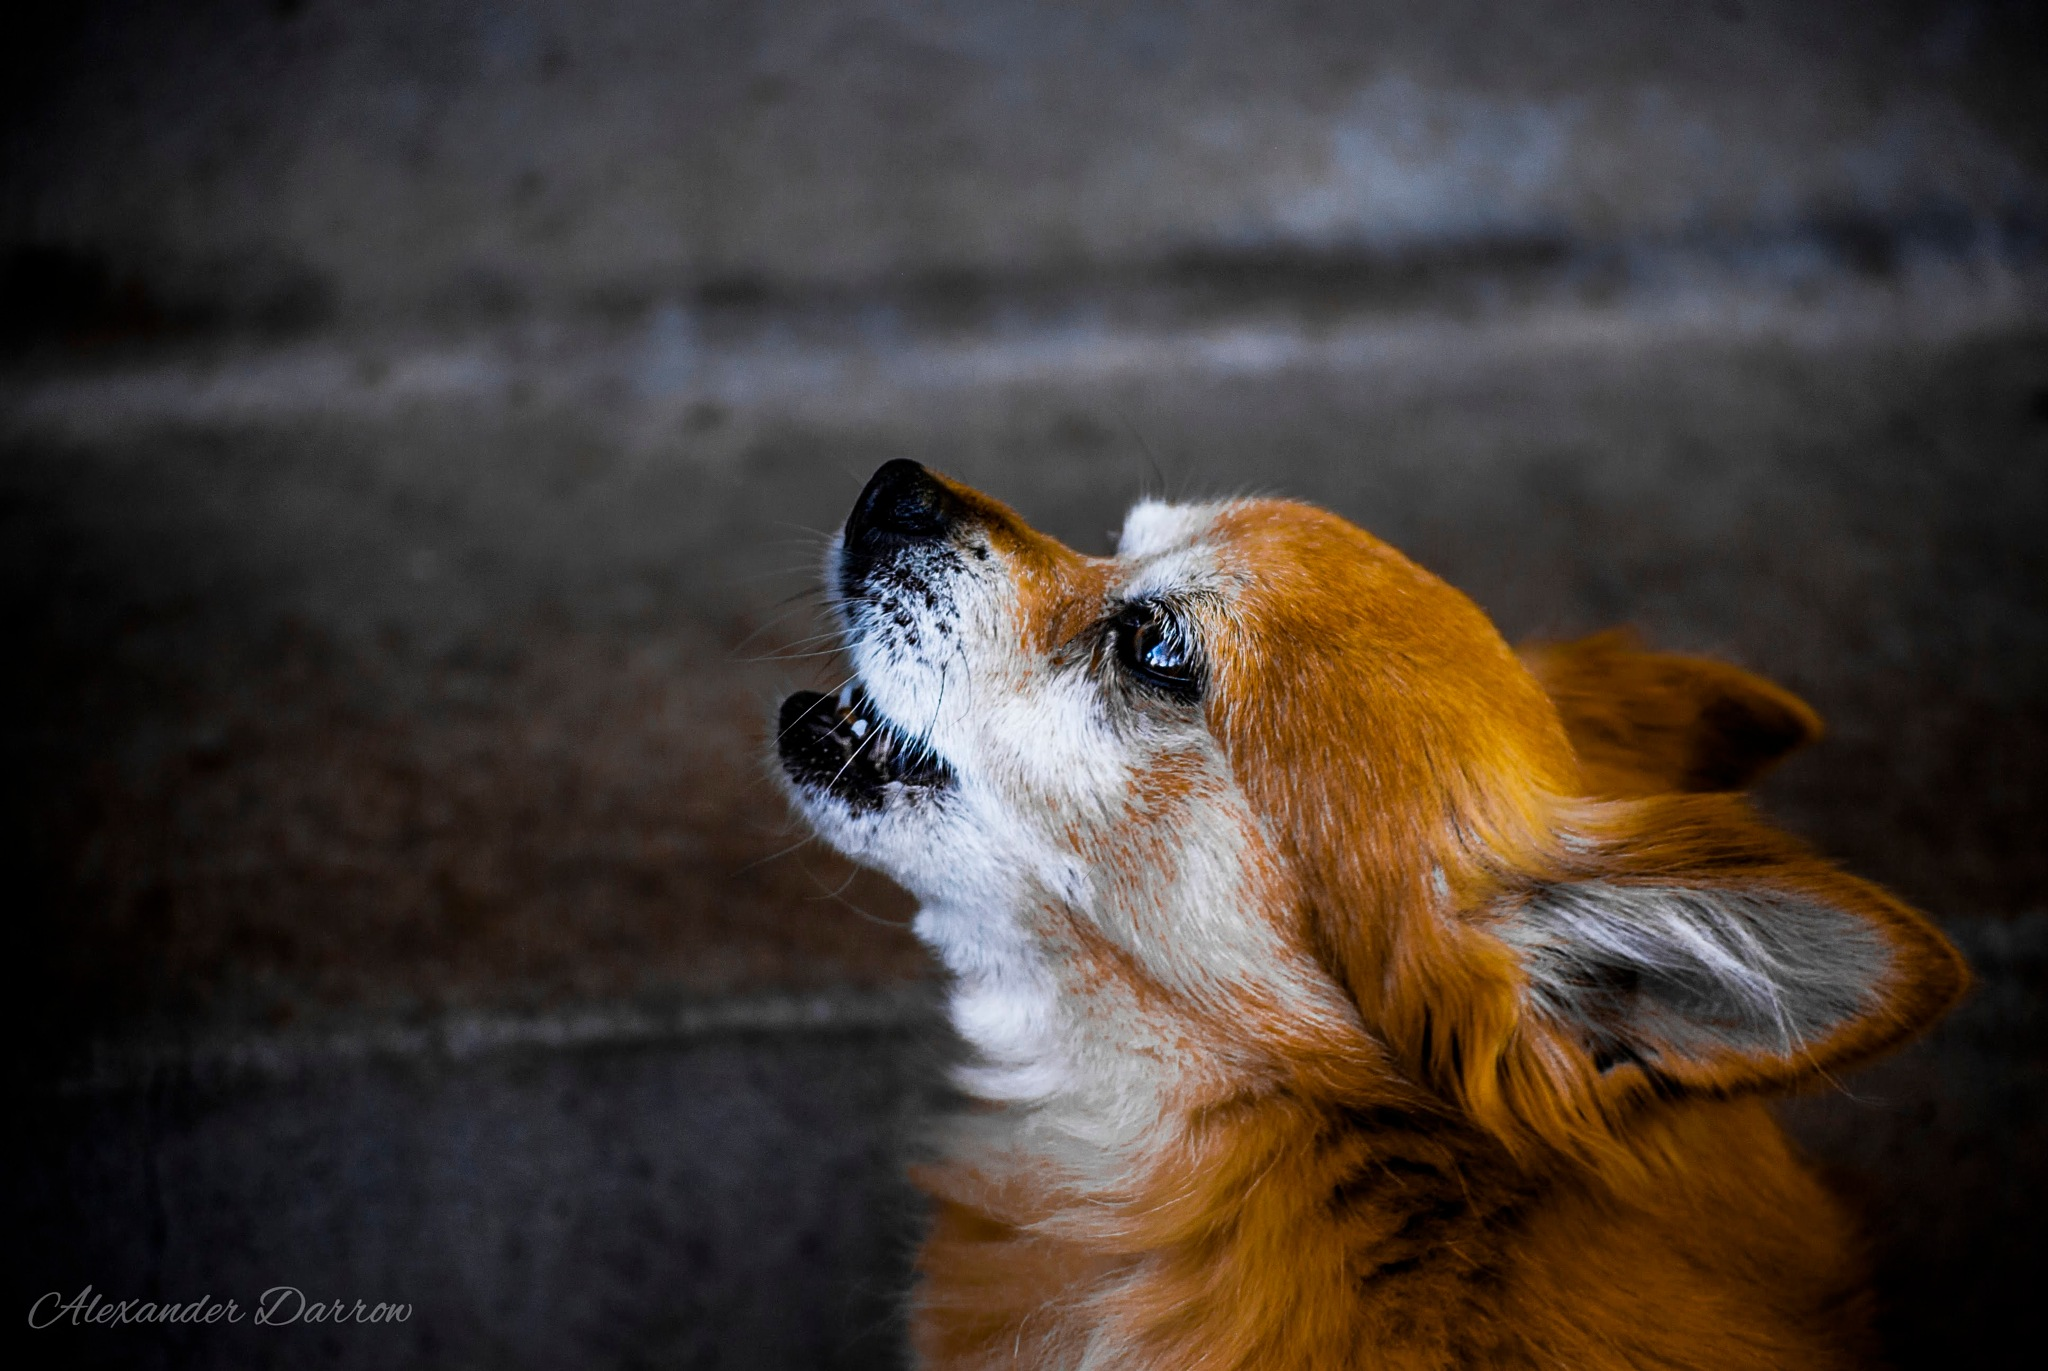 Bandit Howling by primamateriaphotos